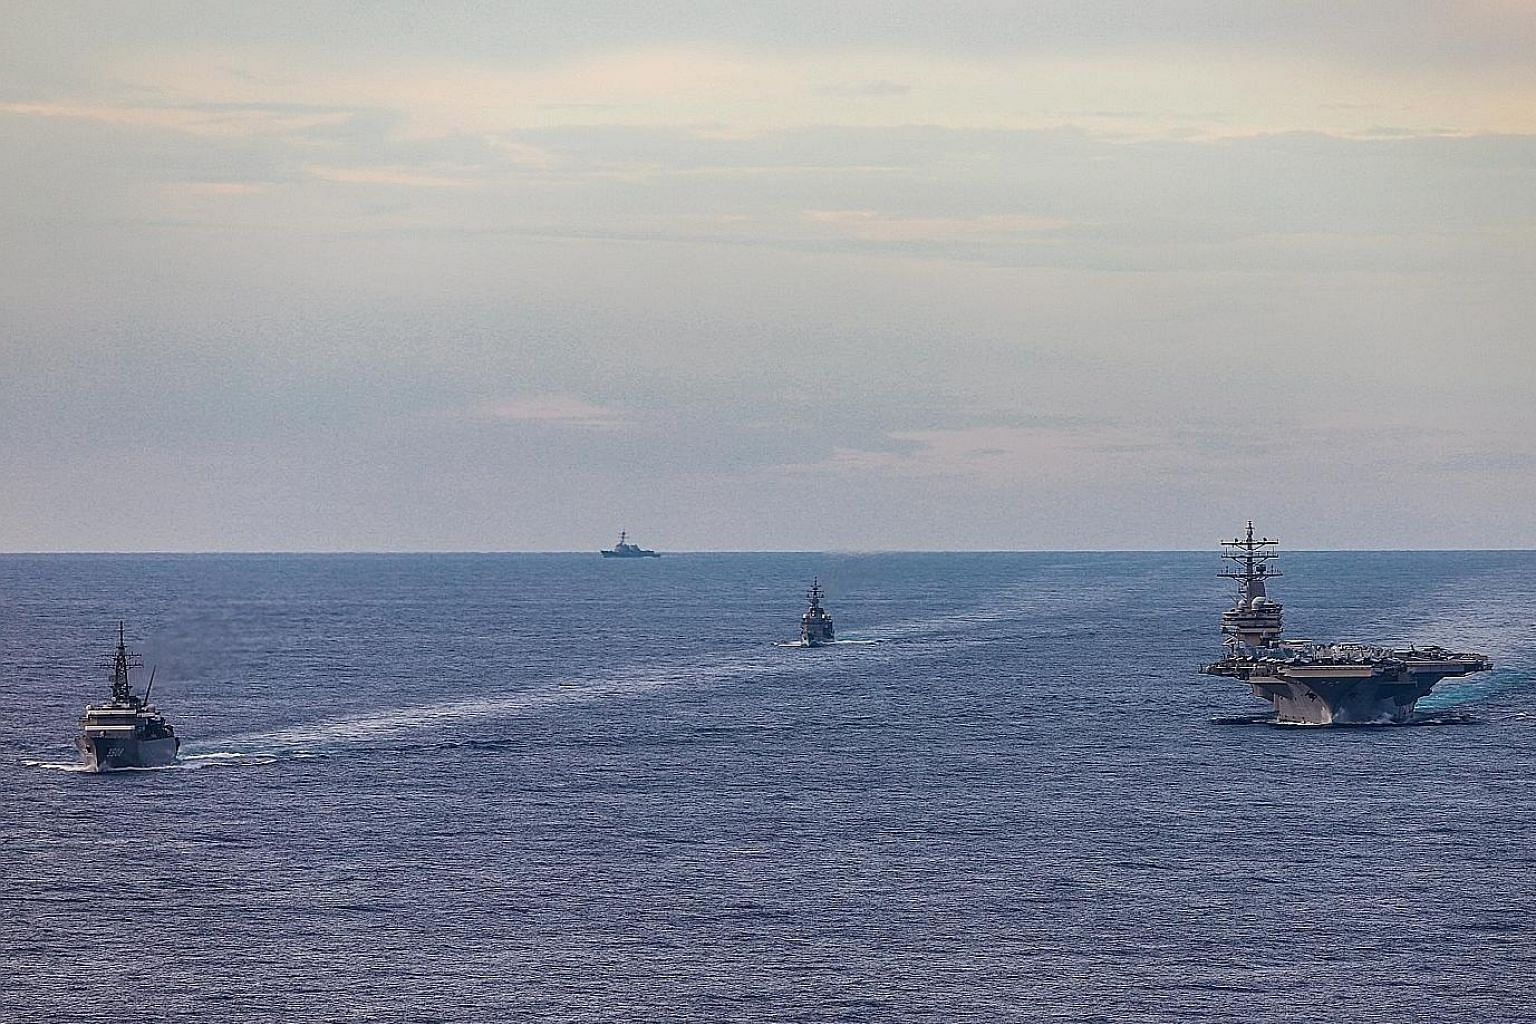 Japanese and American ships conducting a passing exercise during a drill in the South China Sea earlier this month. Under the Trump administration, the US has adopted a more hard-nosed policy towards China over a range of issues, including on the Sou